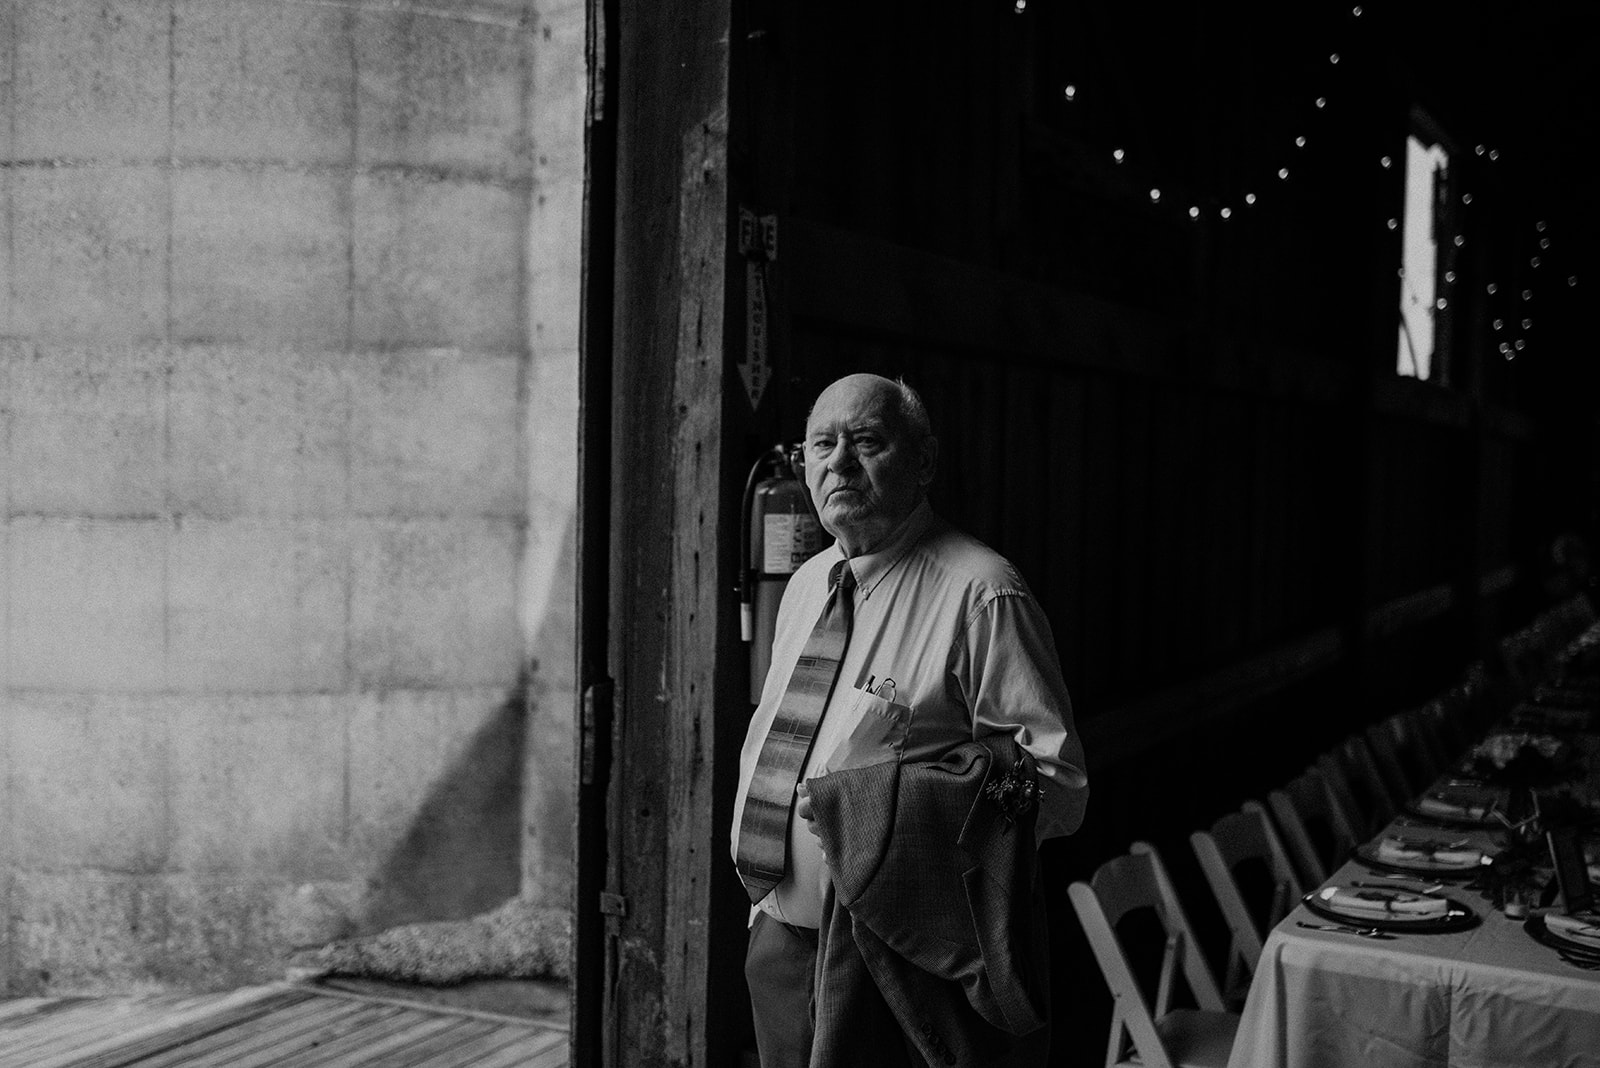 overthevineswisconsinwedding_0500.jpg